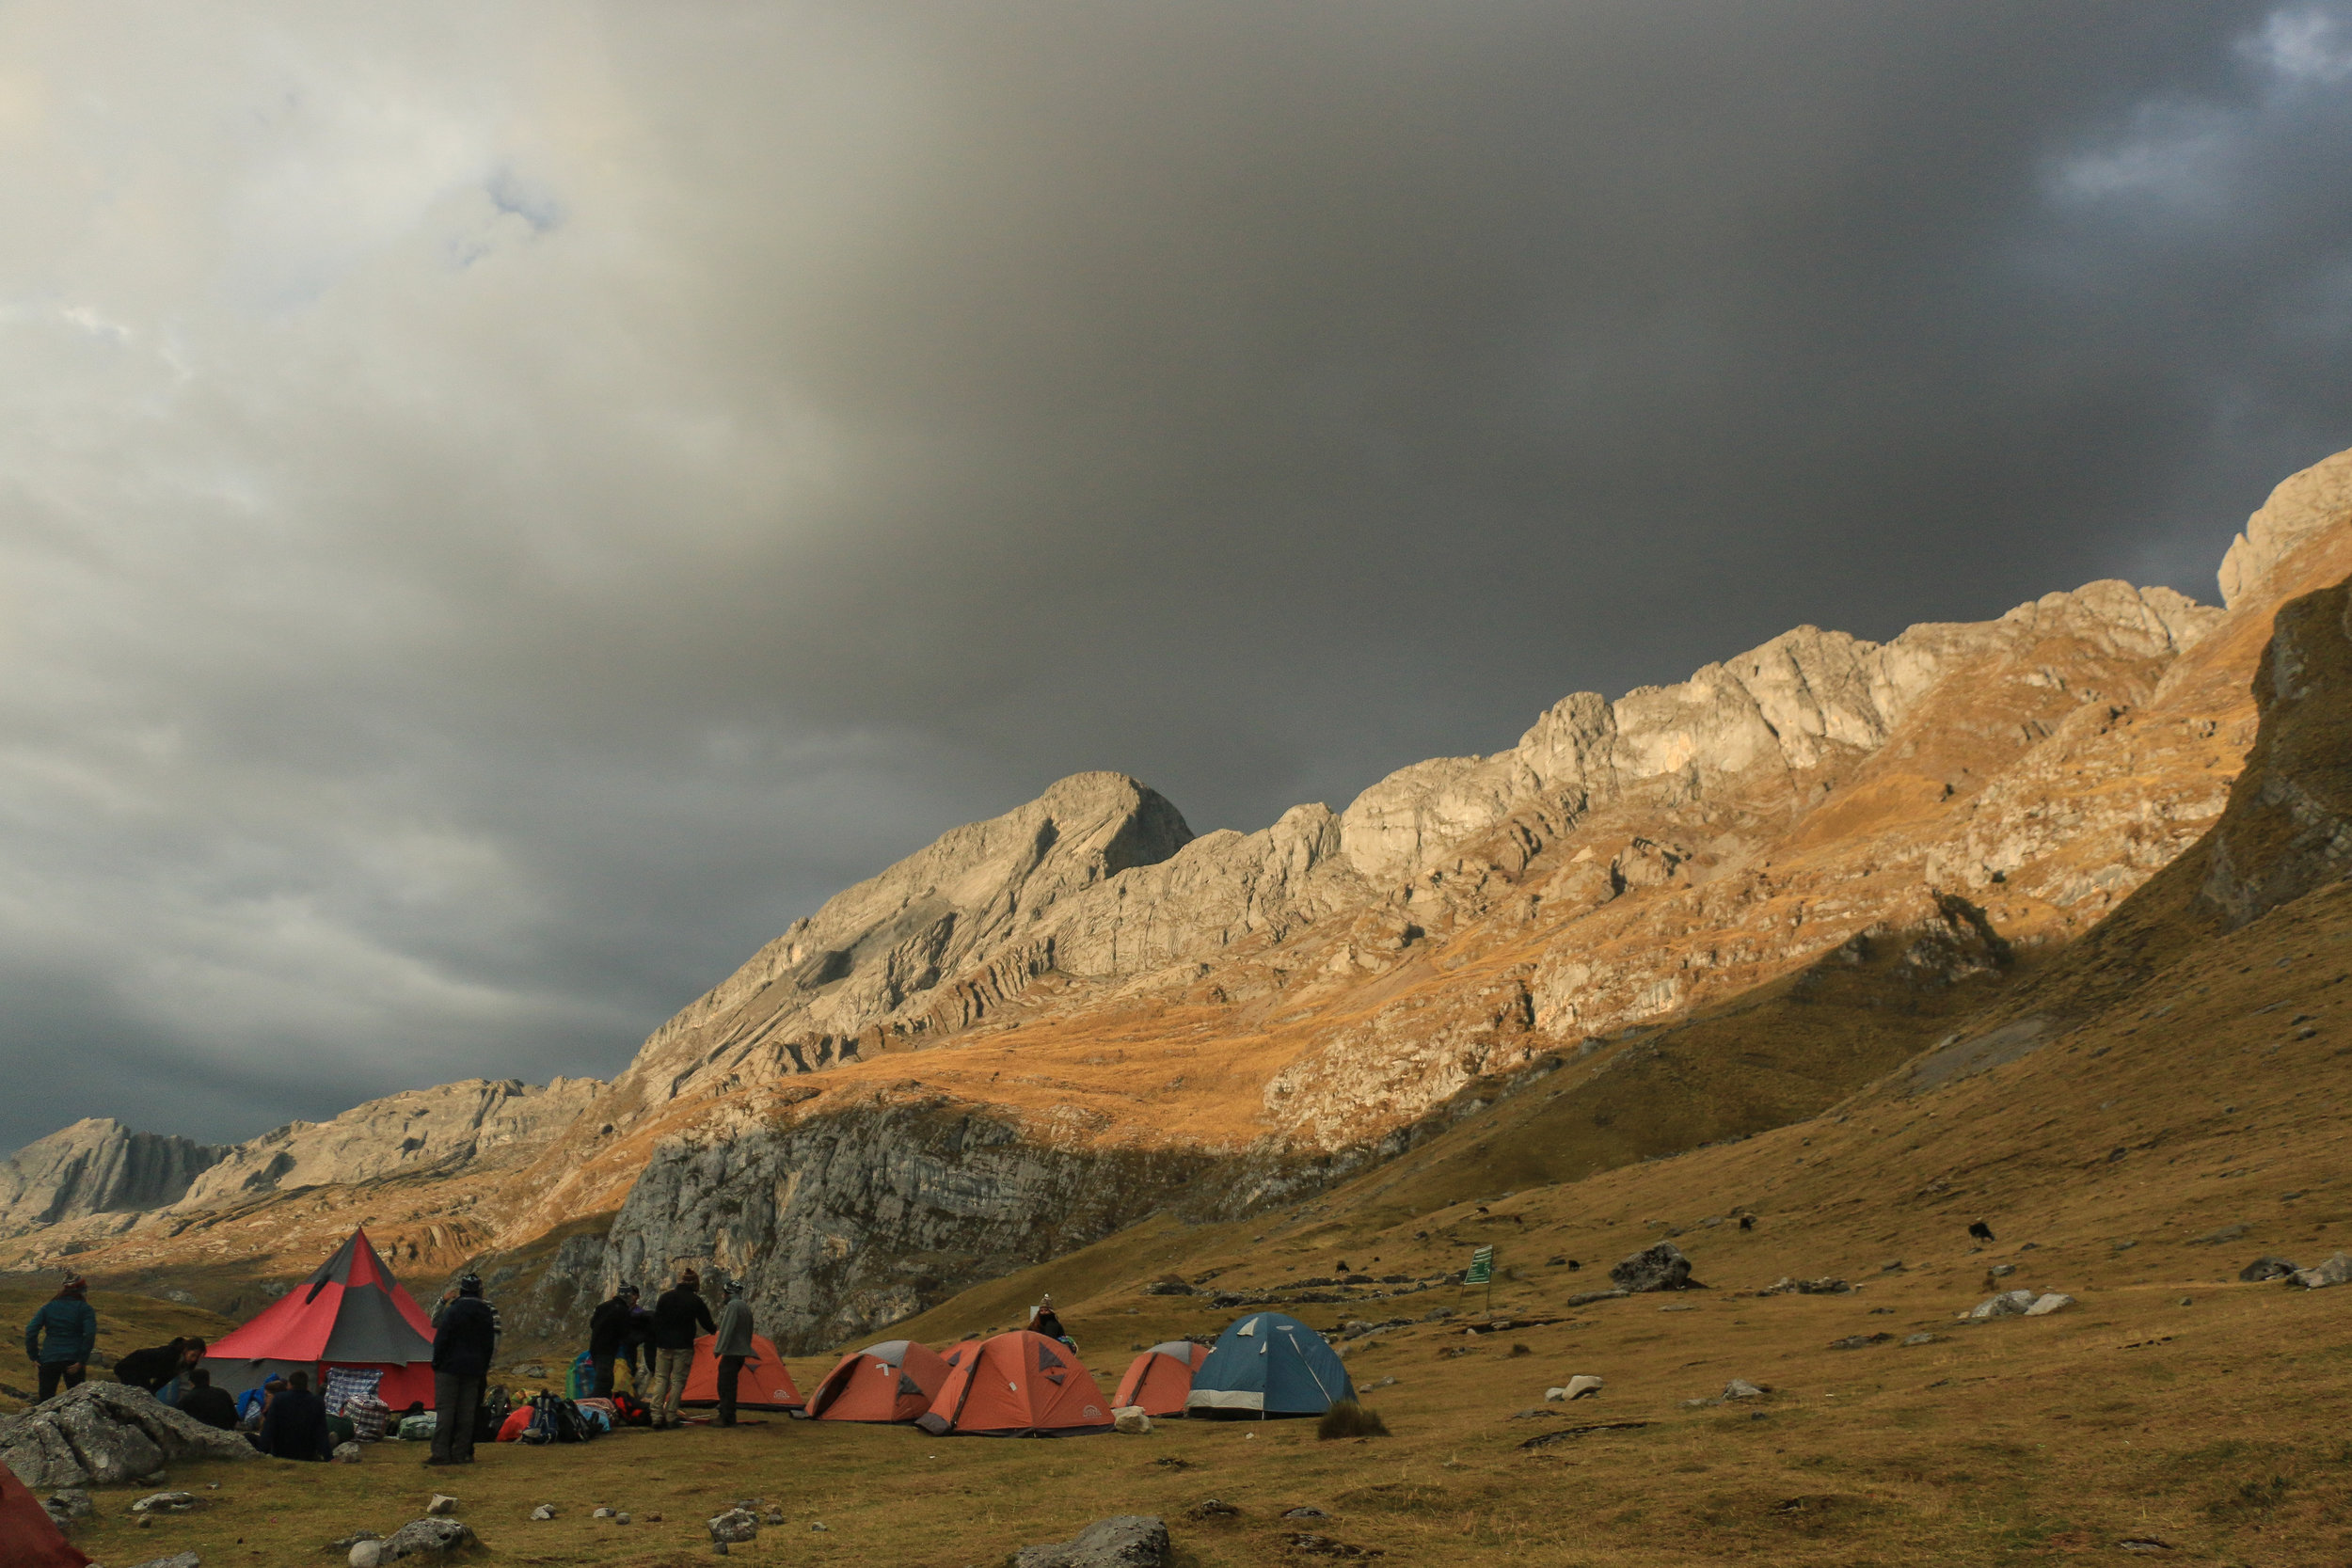 Rain clouds gathering above a neighboring camp.